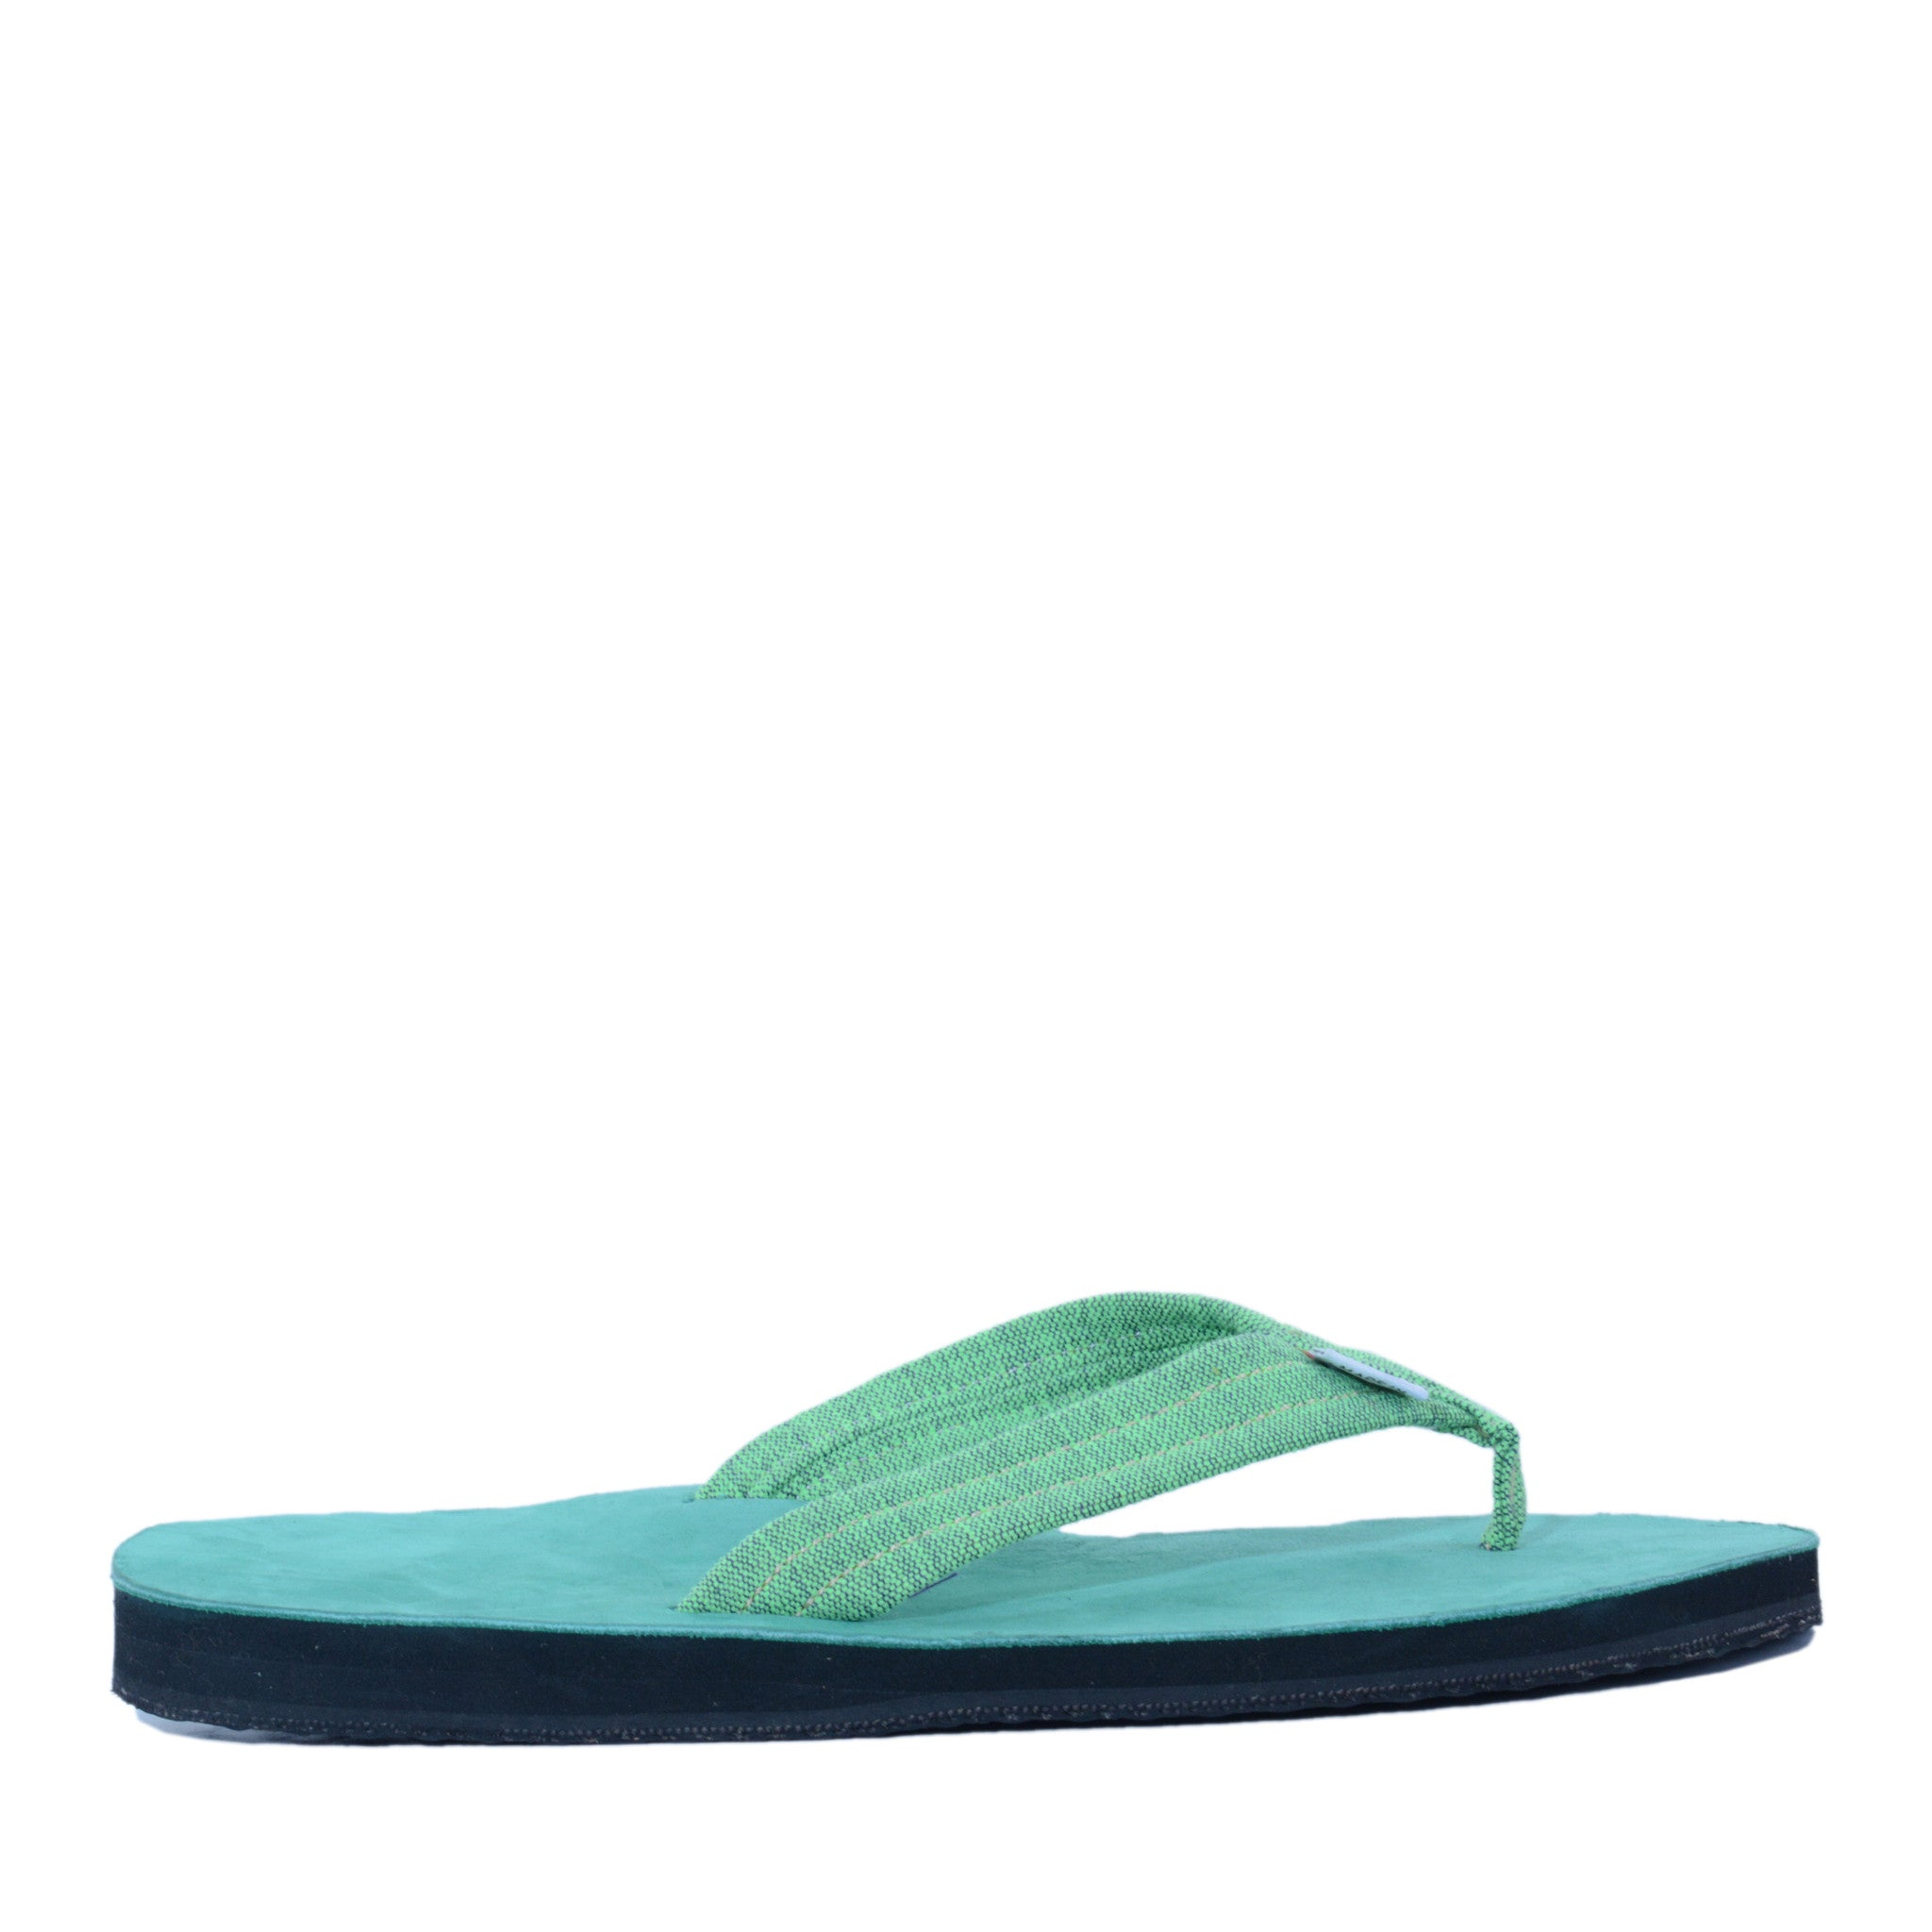 solerebels Bright green nuDEAL mSh 2 Sandals